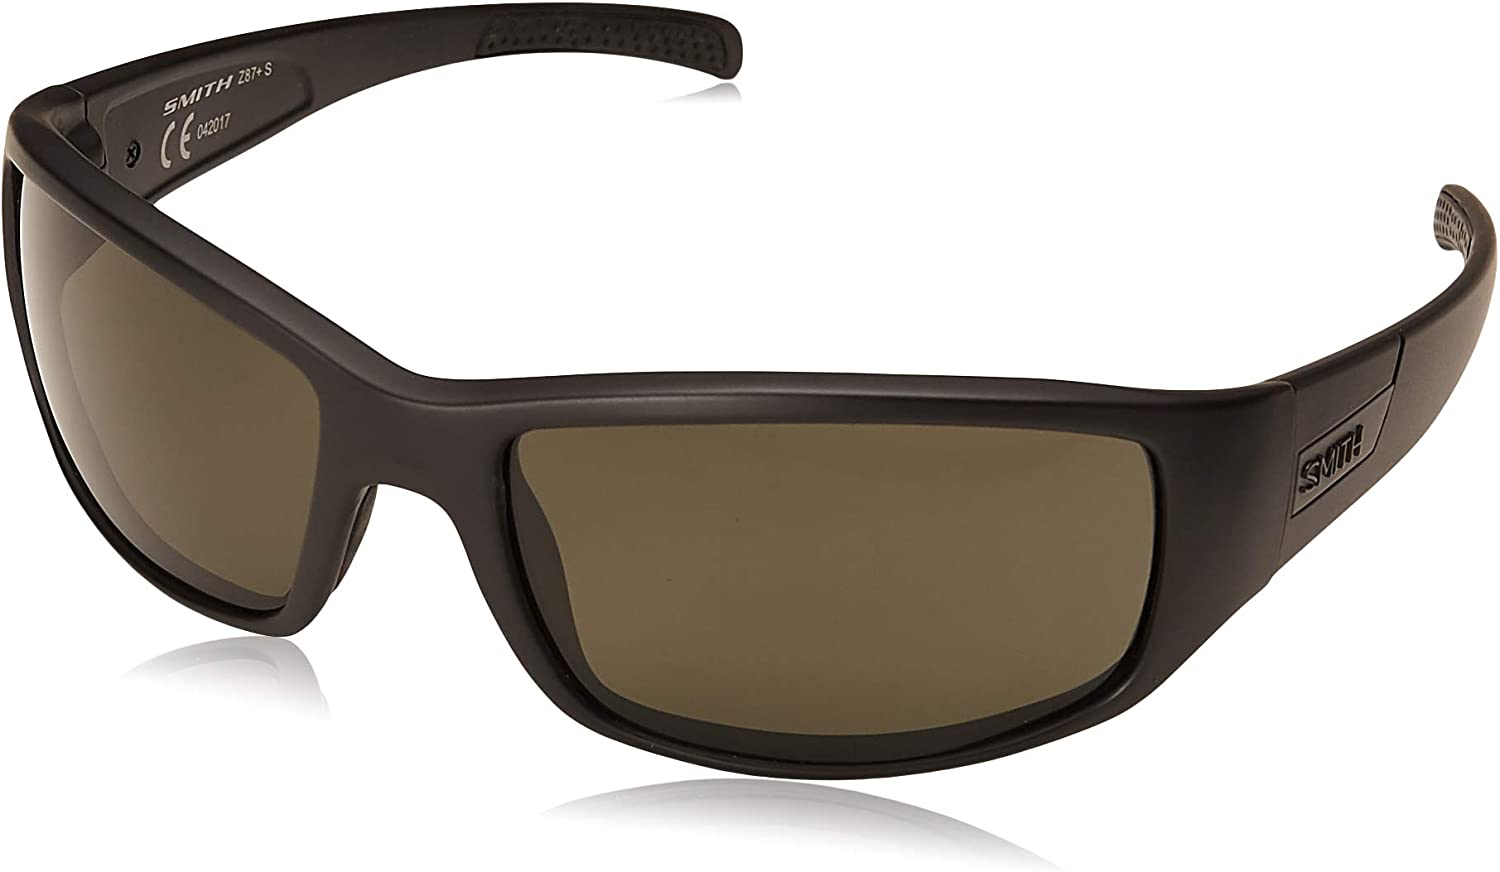 Smith Elite Prospect Tactical Sunglasses